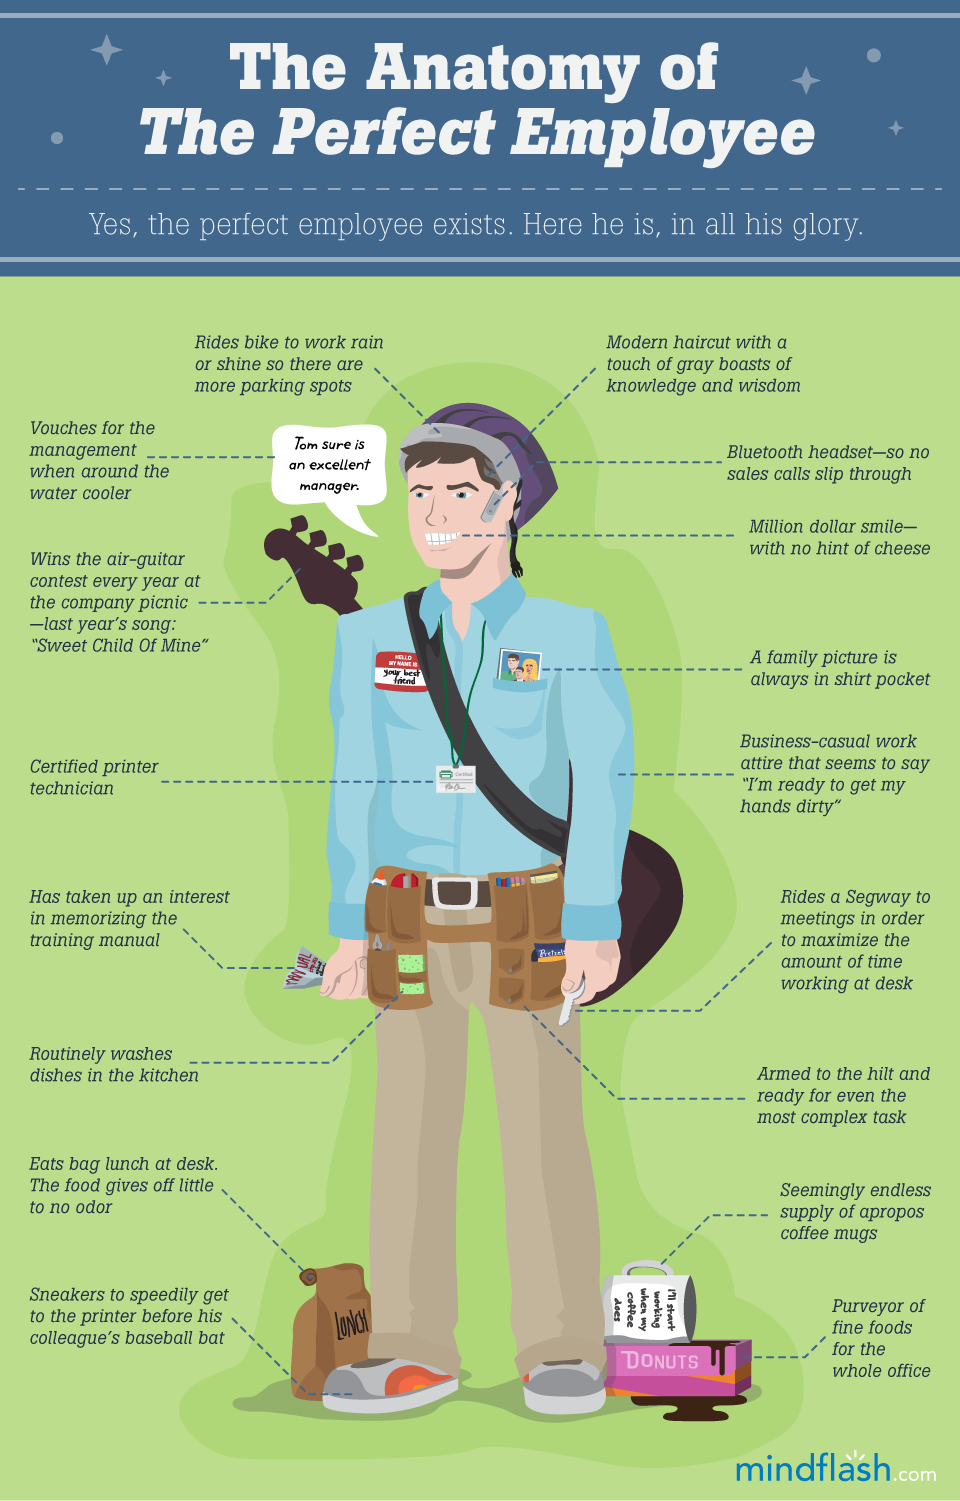 Anatomy of the Perfect Employee